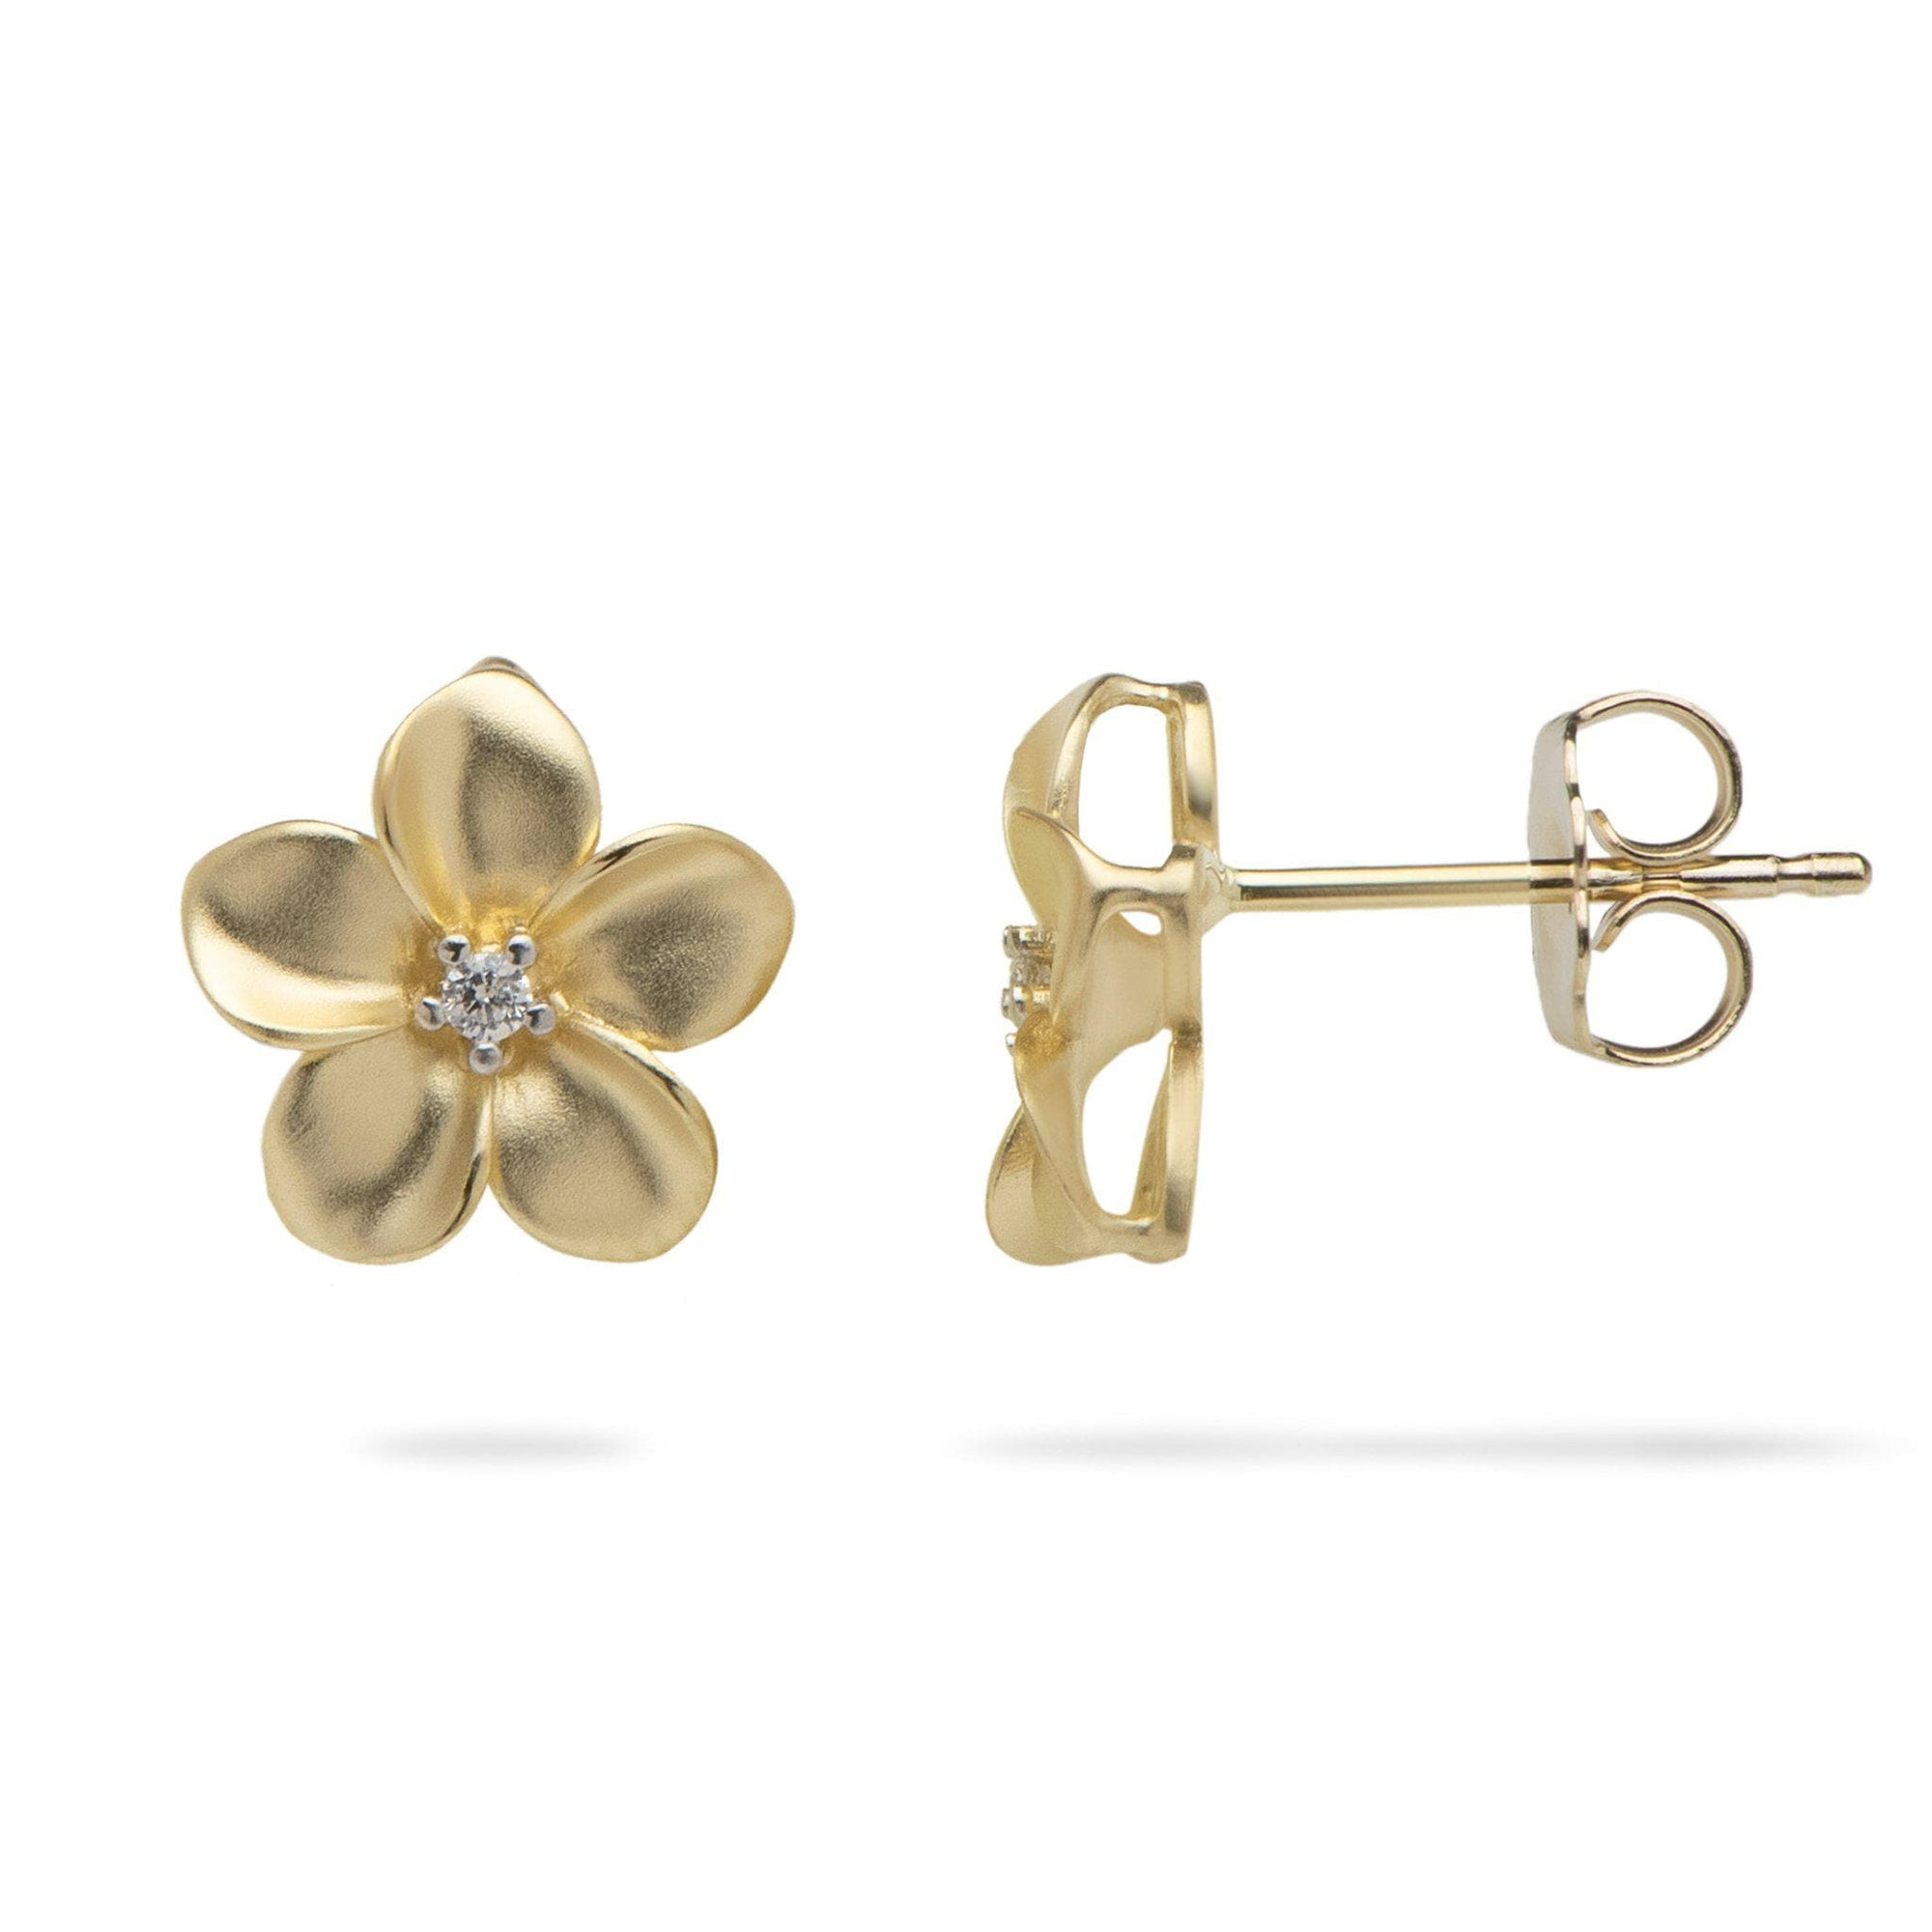 Plumeria Earrings in Gold with Diamonds - 11mm-[SKU]